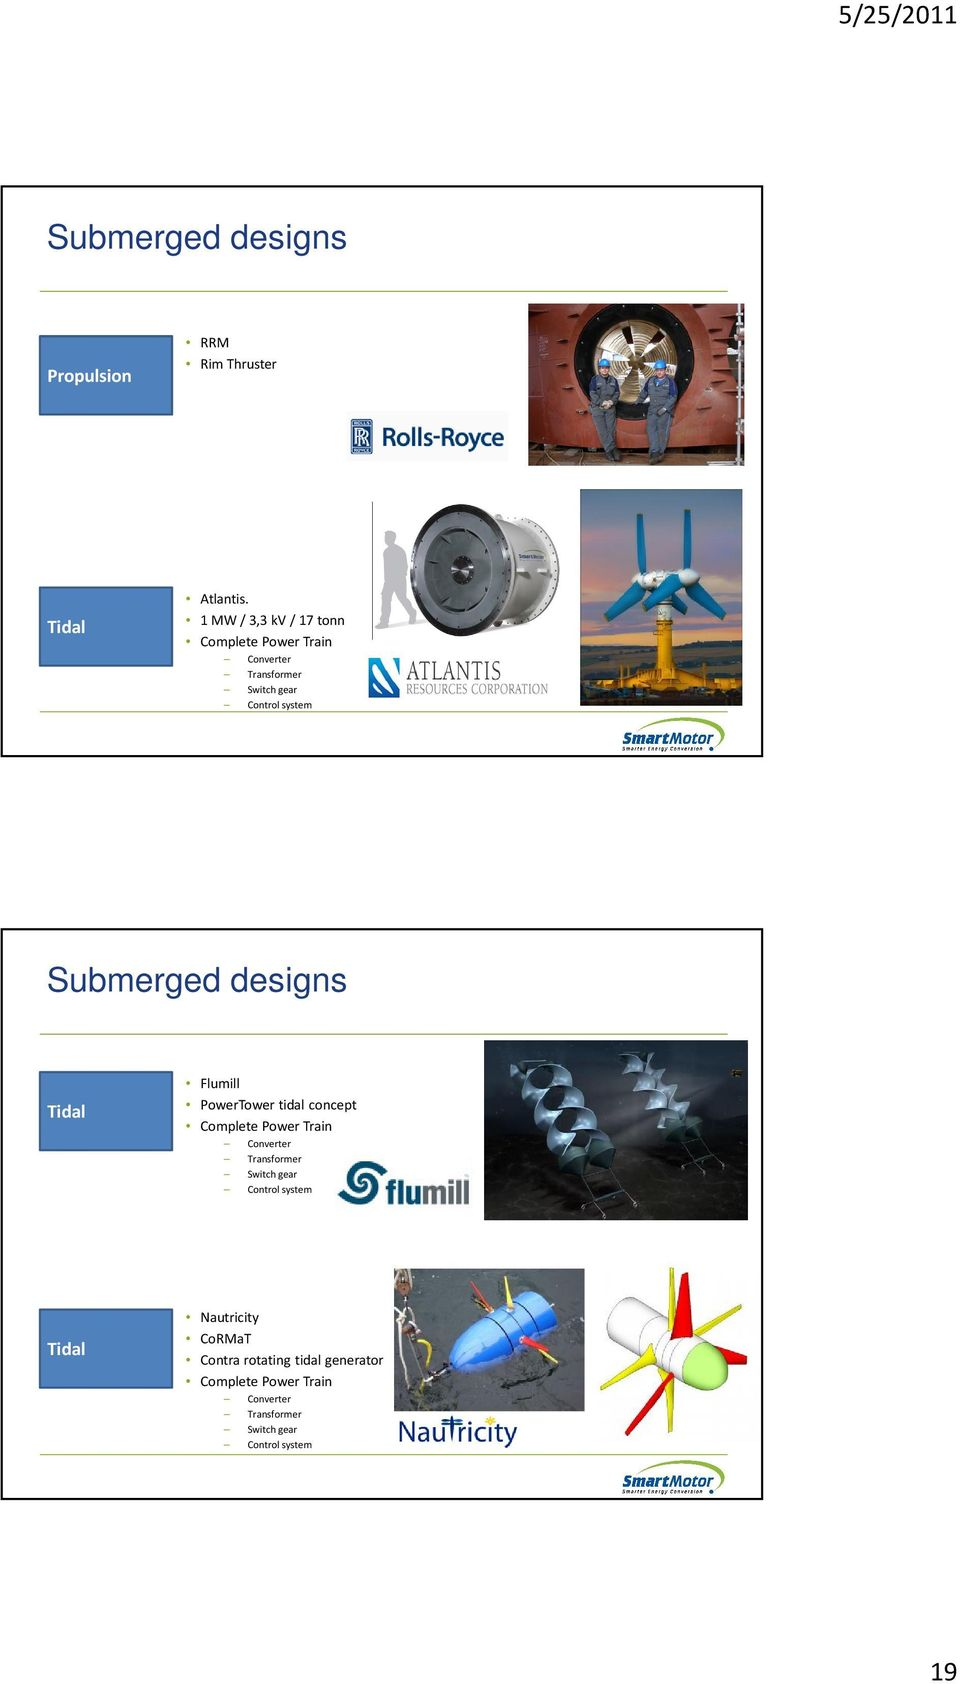 Submerged designs Tidal Flumill PowerTower tidal concept Complete Power Train Converter Transformer